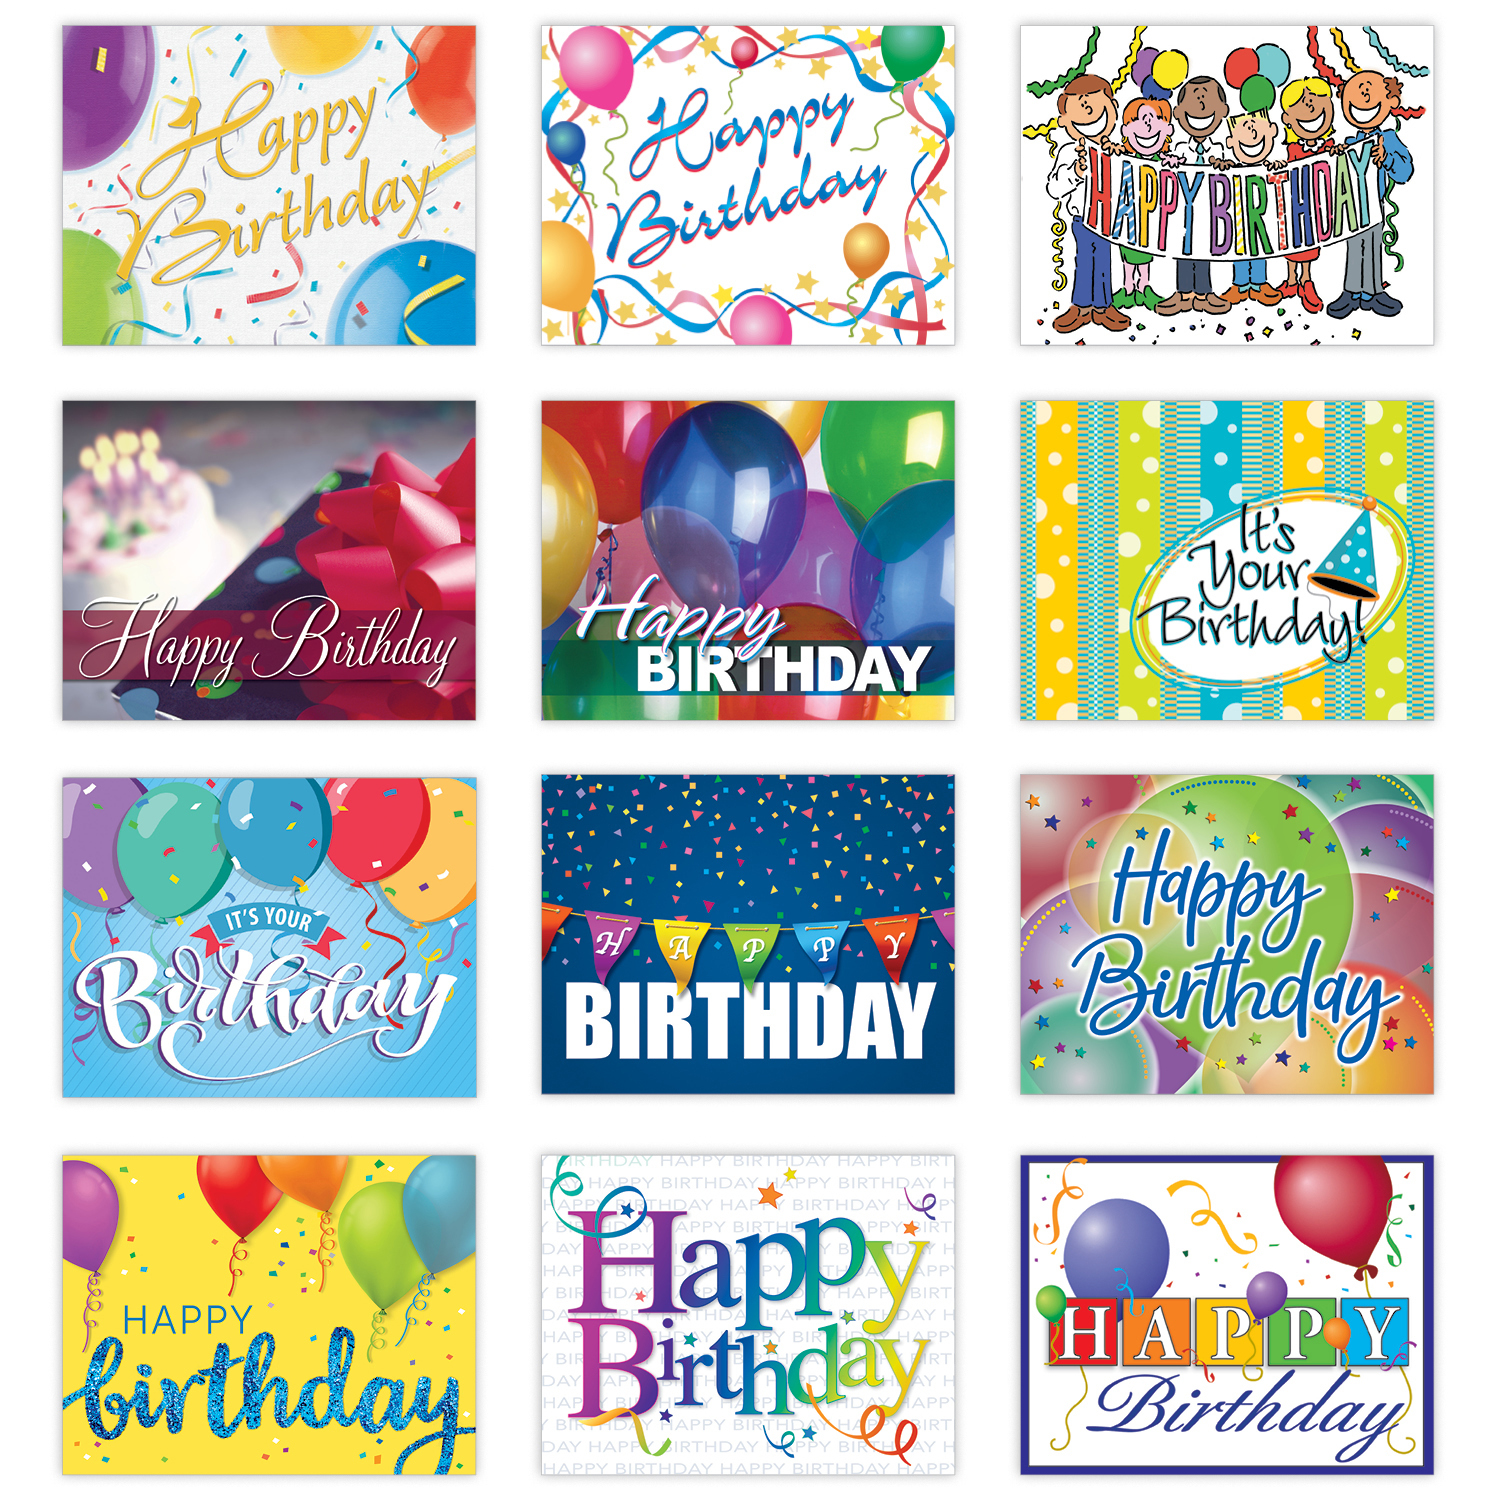 Personalized Celebrations Happy Birthday Card Assortment